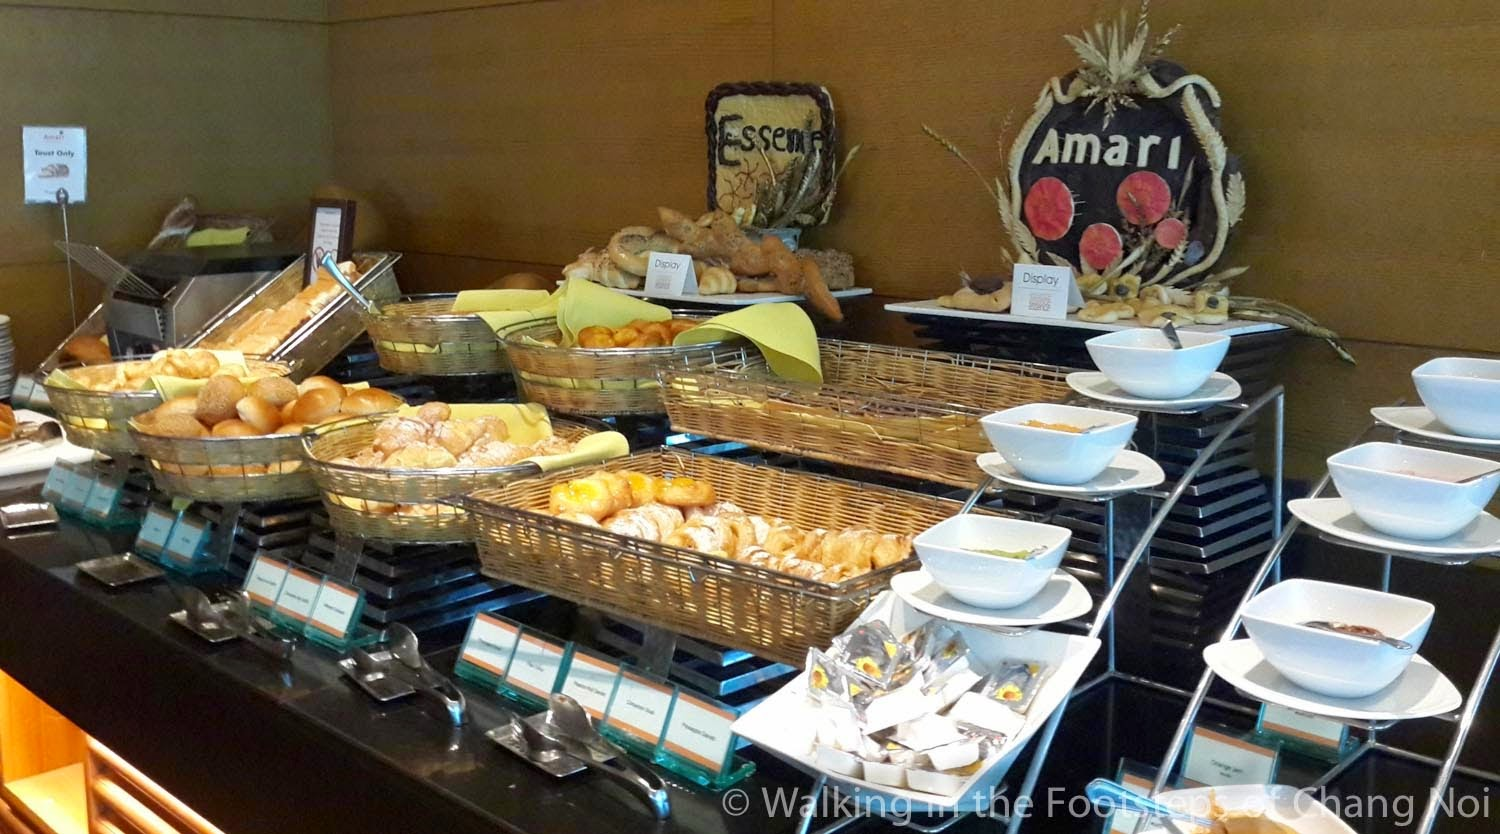 Breakfast at Amari Tower Pattaya